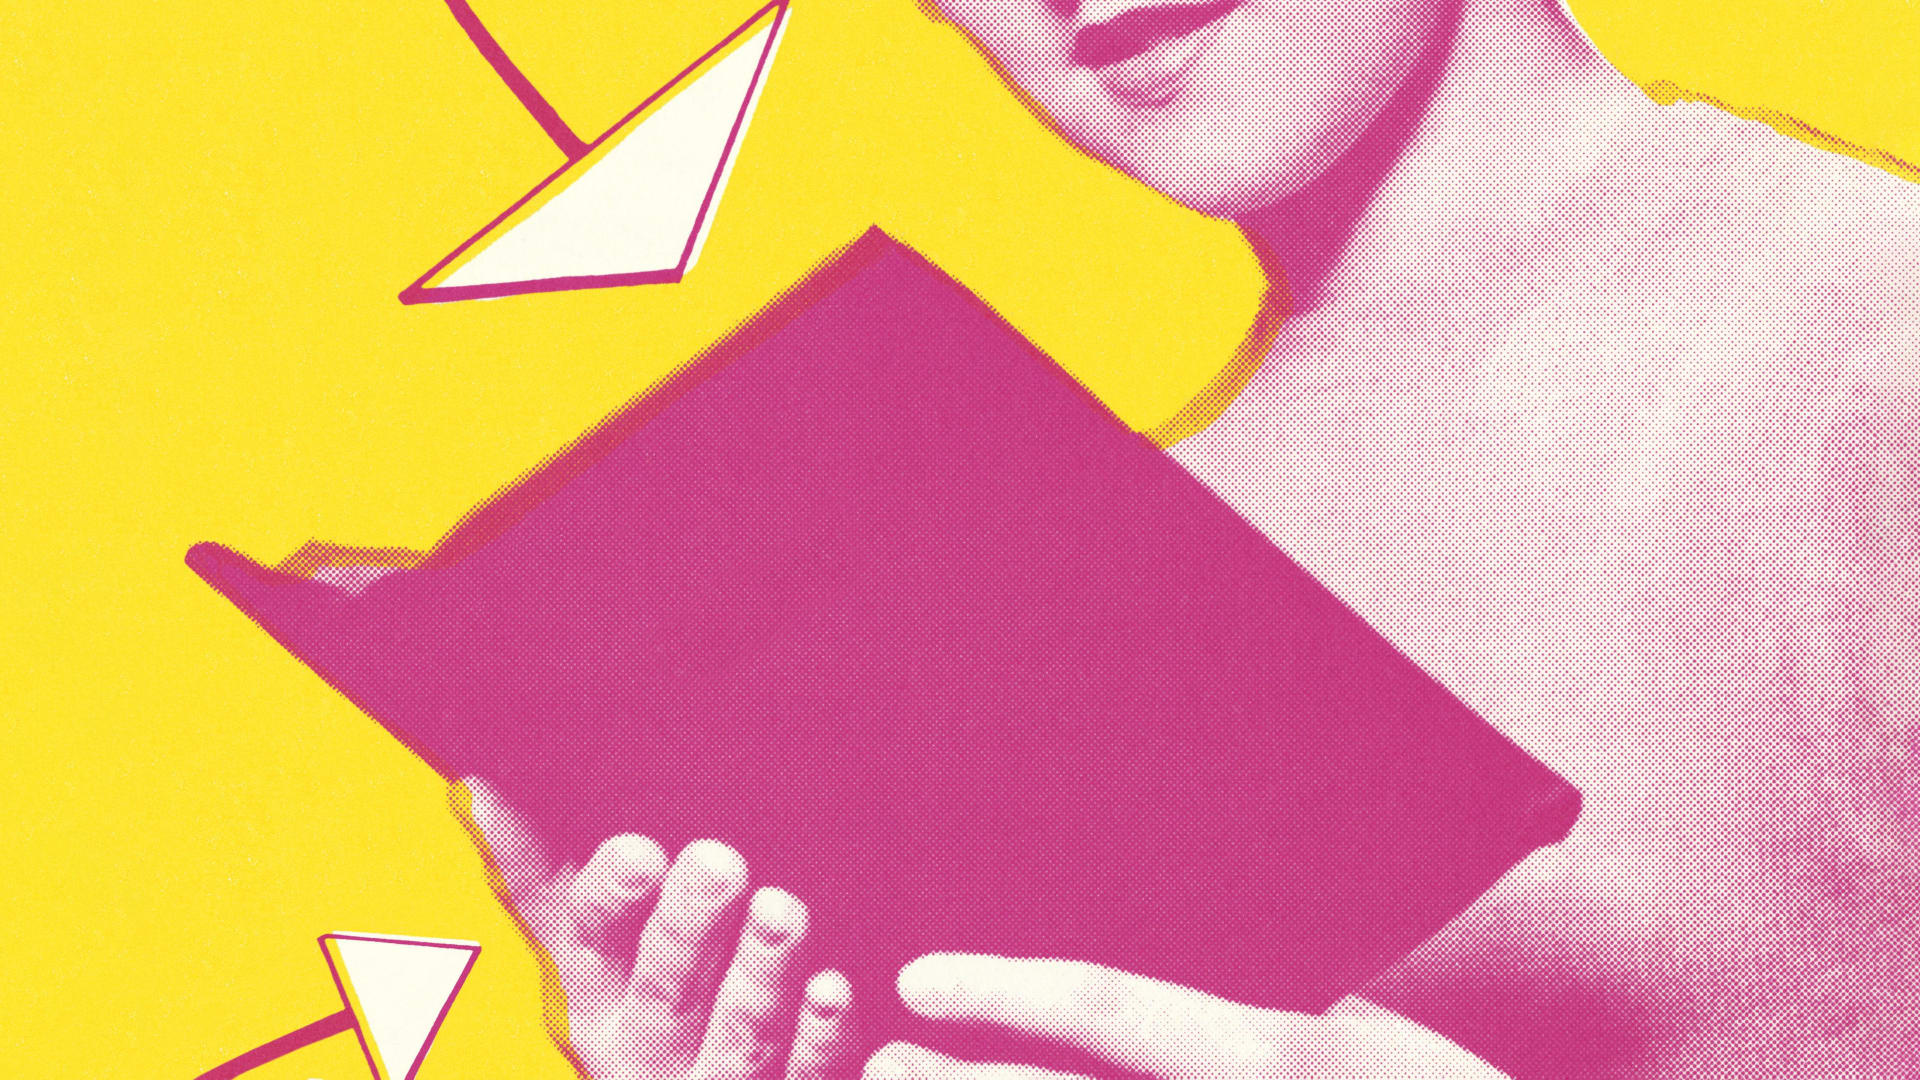 8 New Books That Just Might Change Your Life and Work